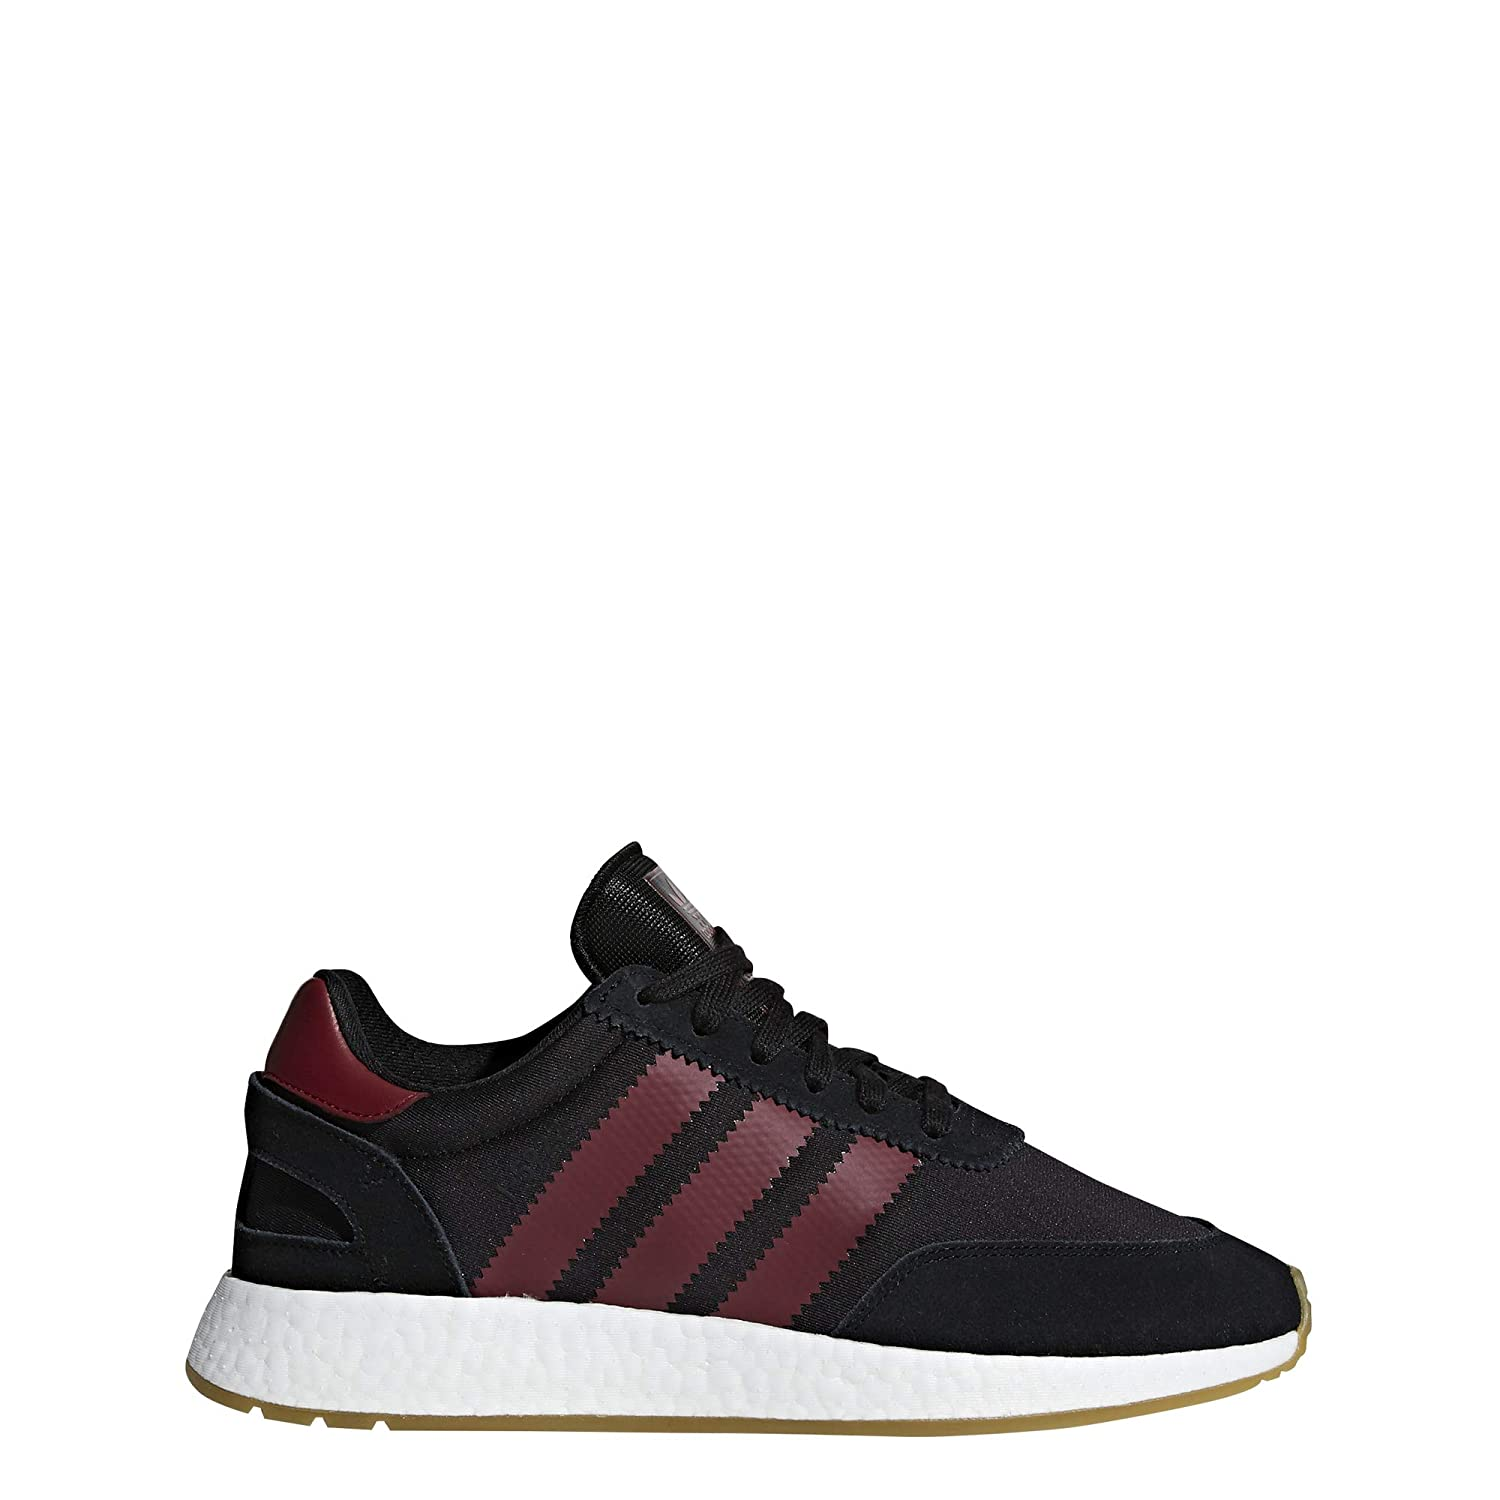 3c99dc72cfbf7 Amazon.com | adidas Originals Men's I-5923 Suede Sneakers | Fashion ...